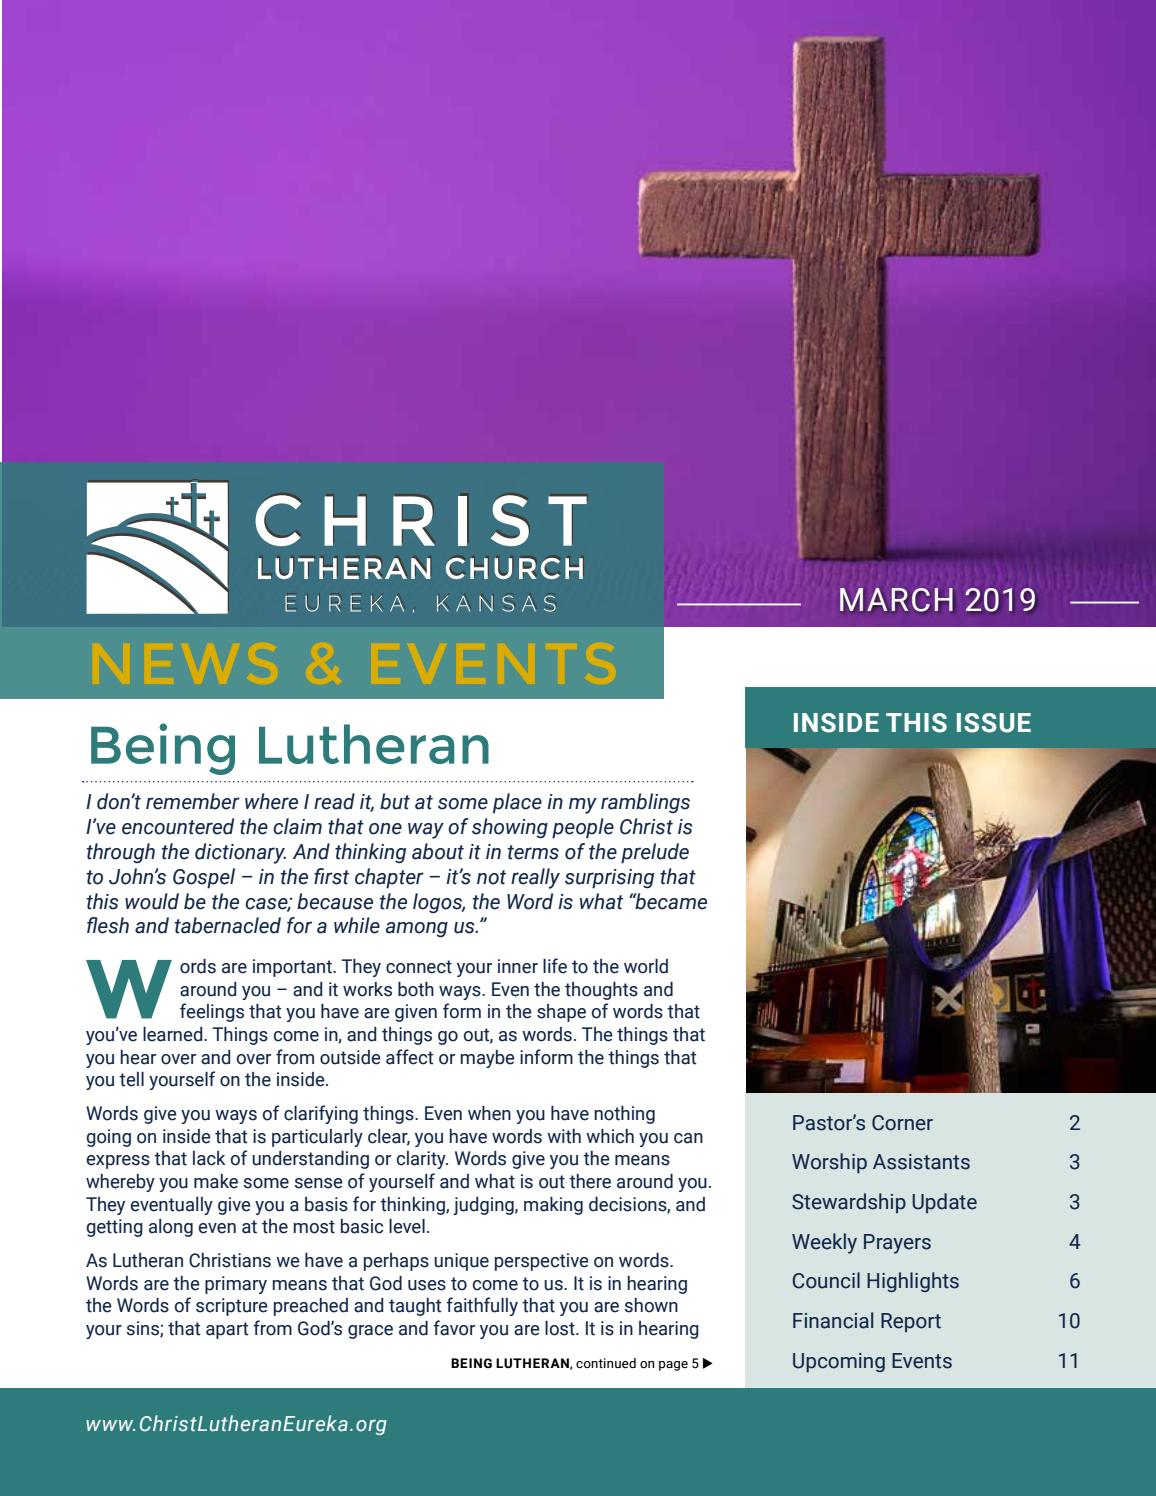 Clc Events For March 31 2020.Clc March News Events By Quickdrawdesign Issuu